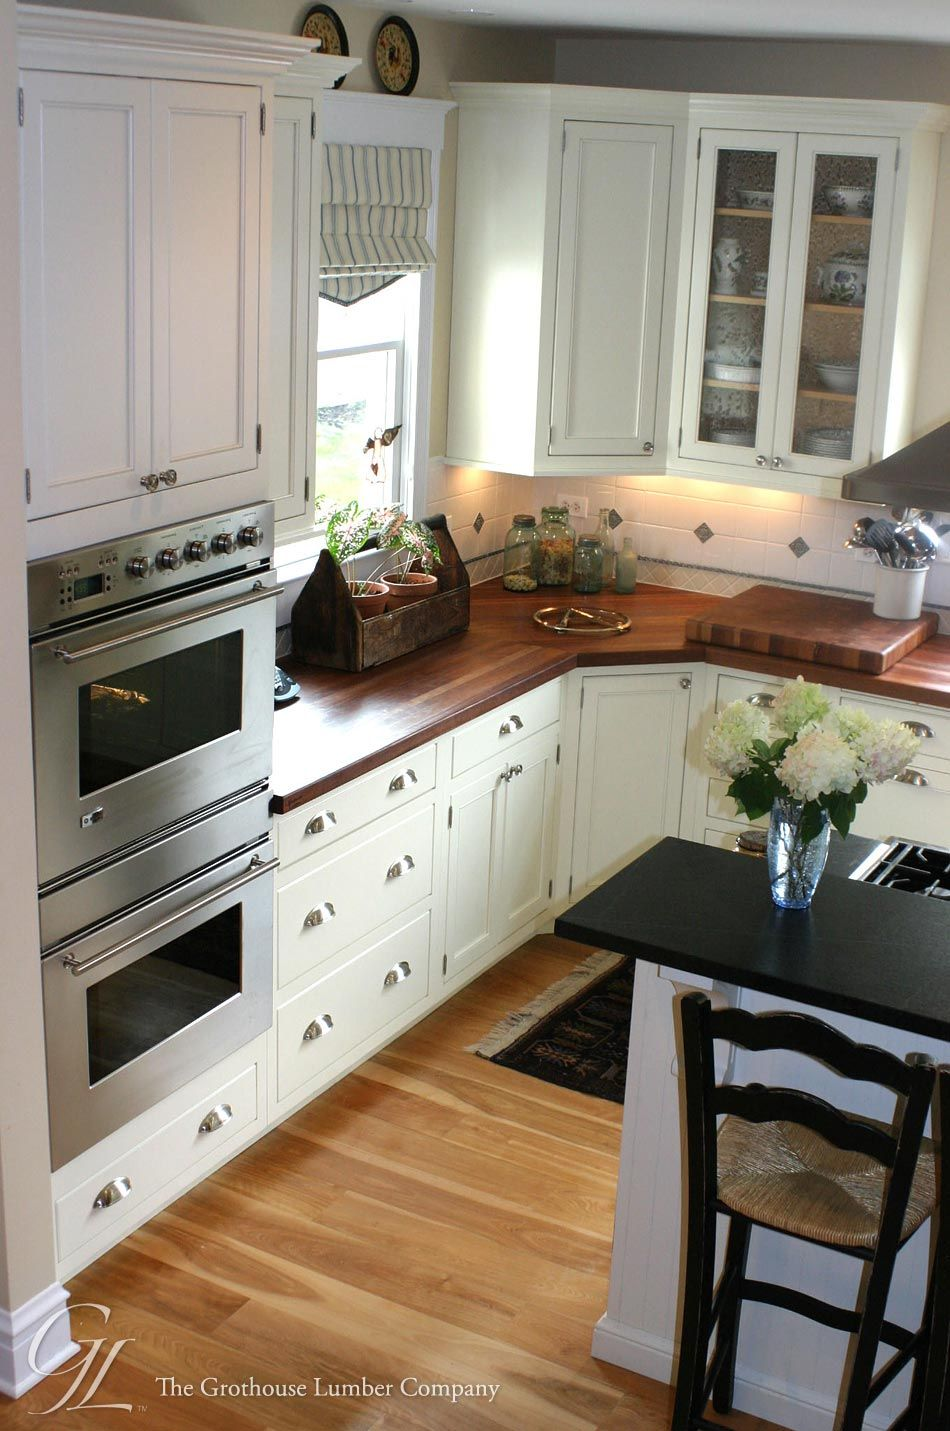 Light Floor White Cabinets Dark Wood Countertops Custom